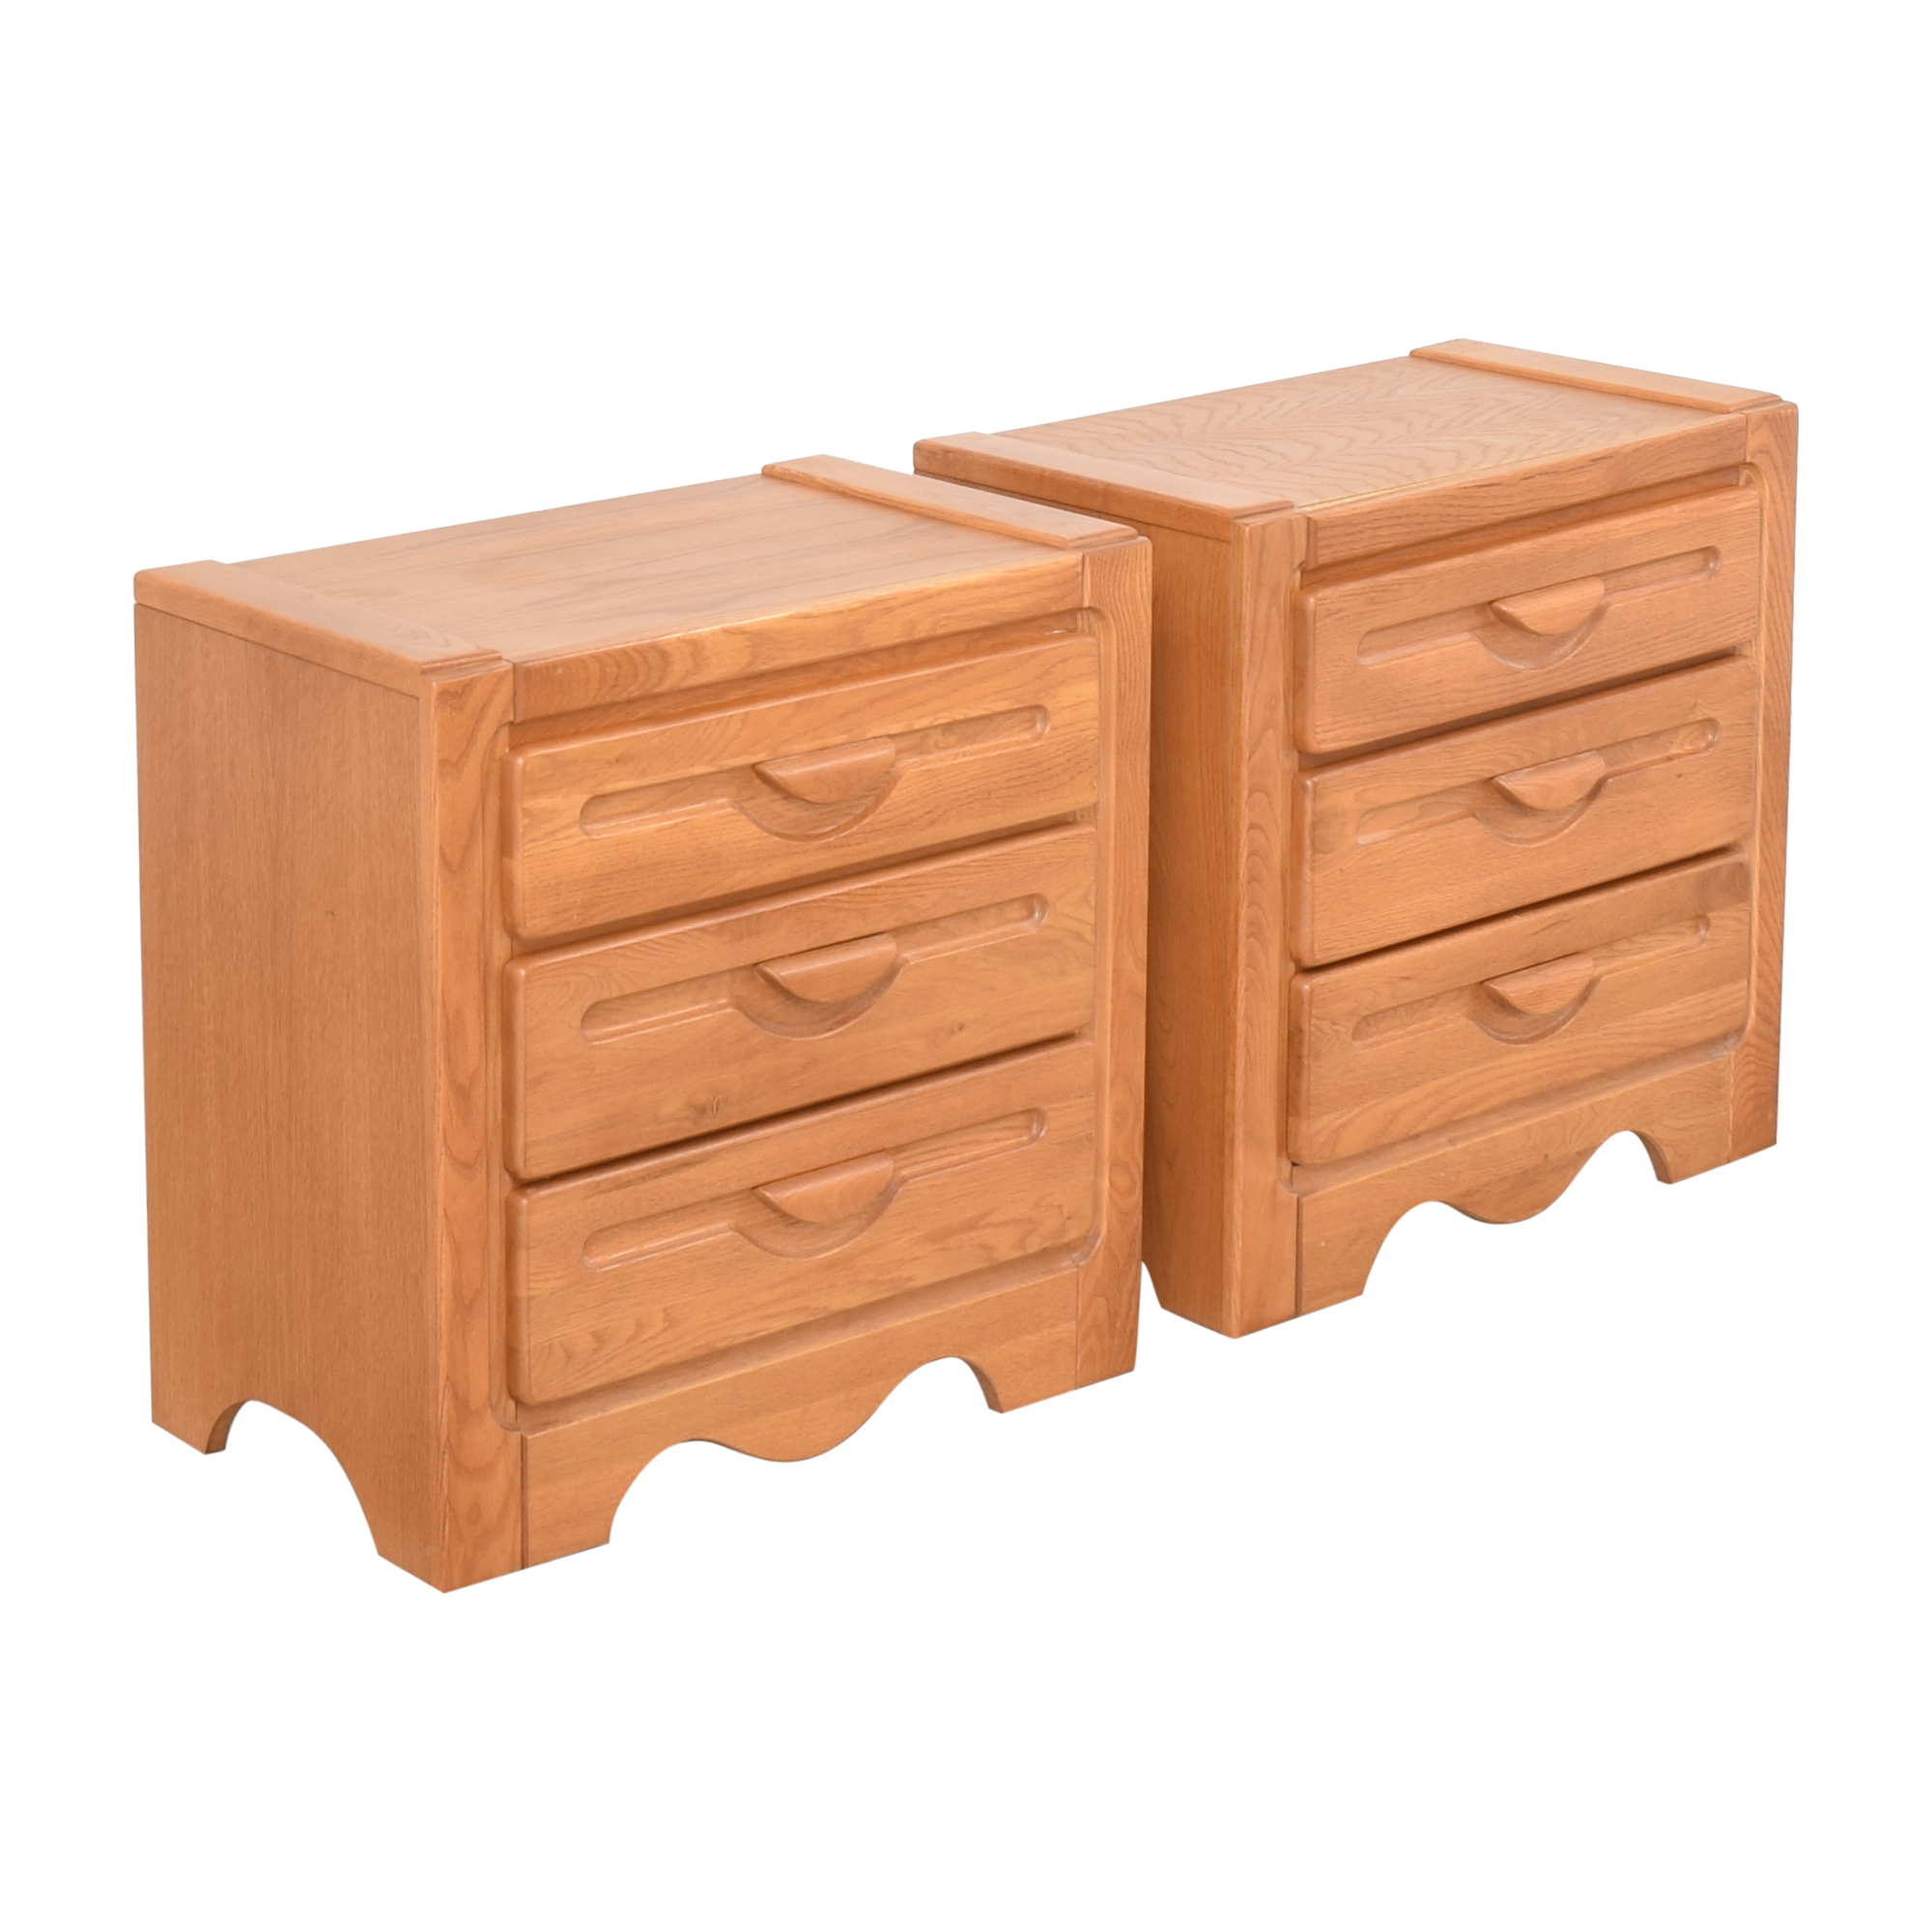 Webb Furniture Webb Furniture Vintage Nightstands